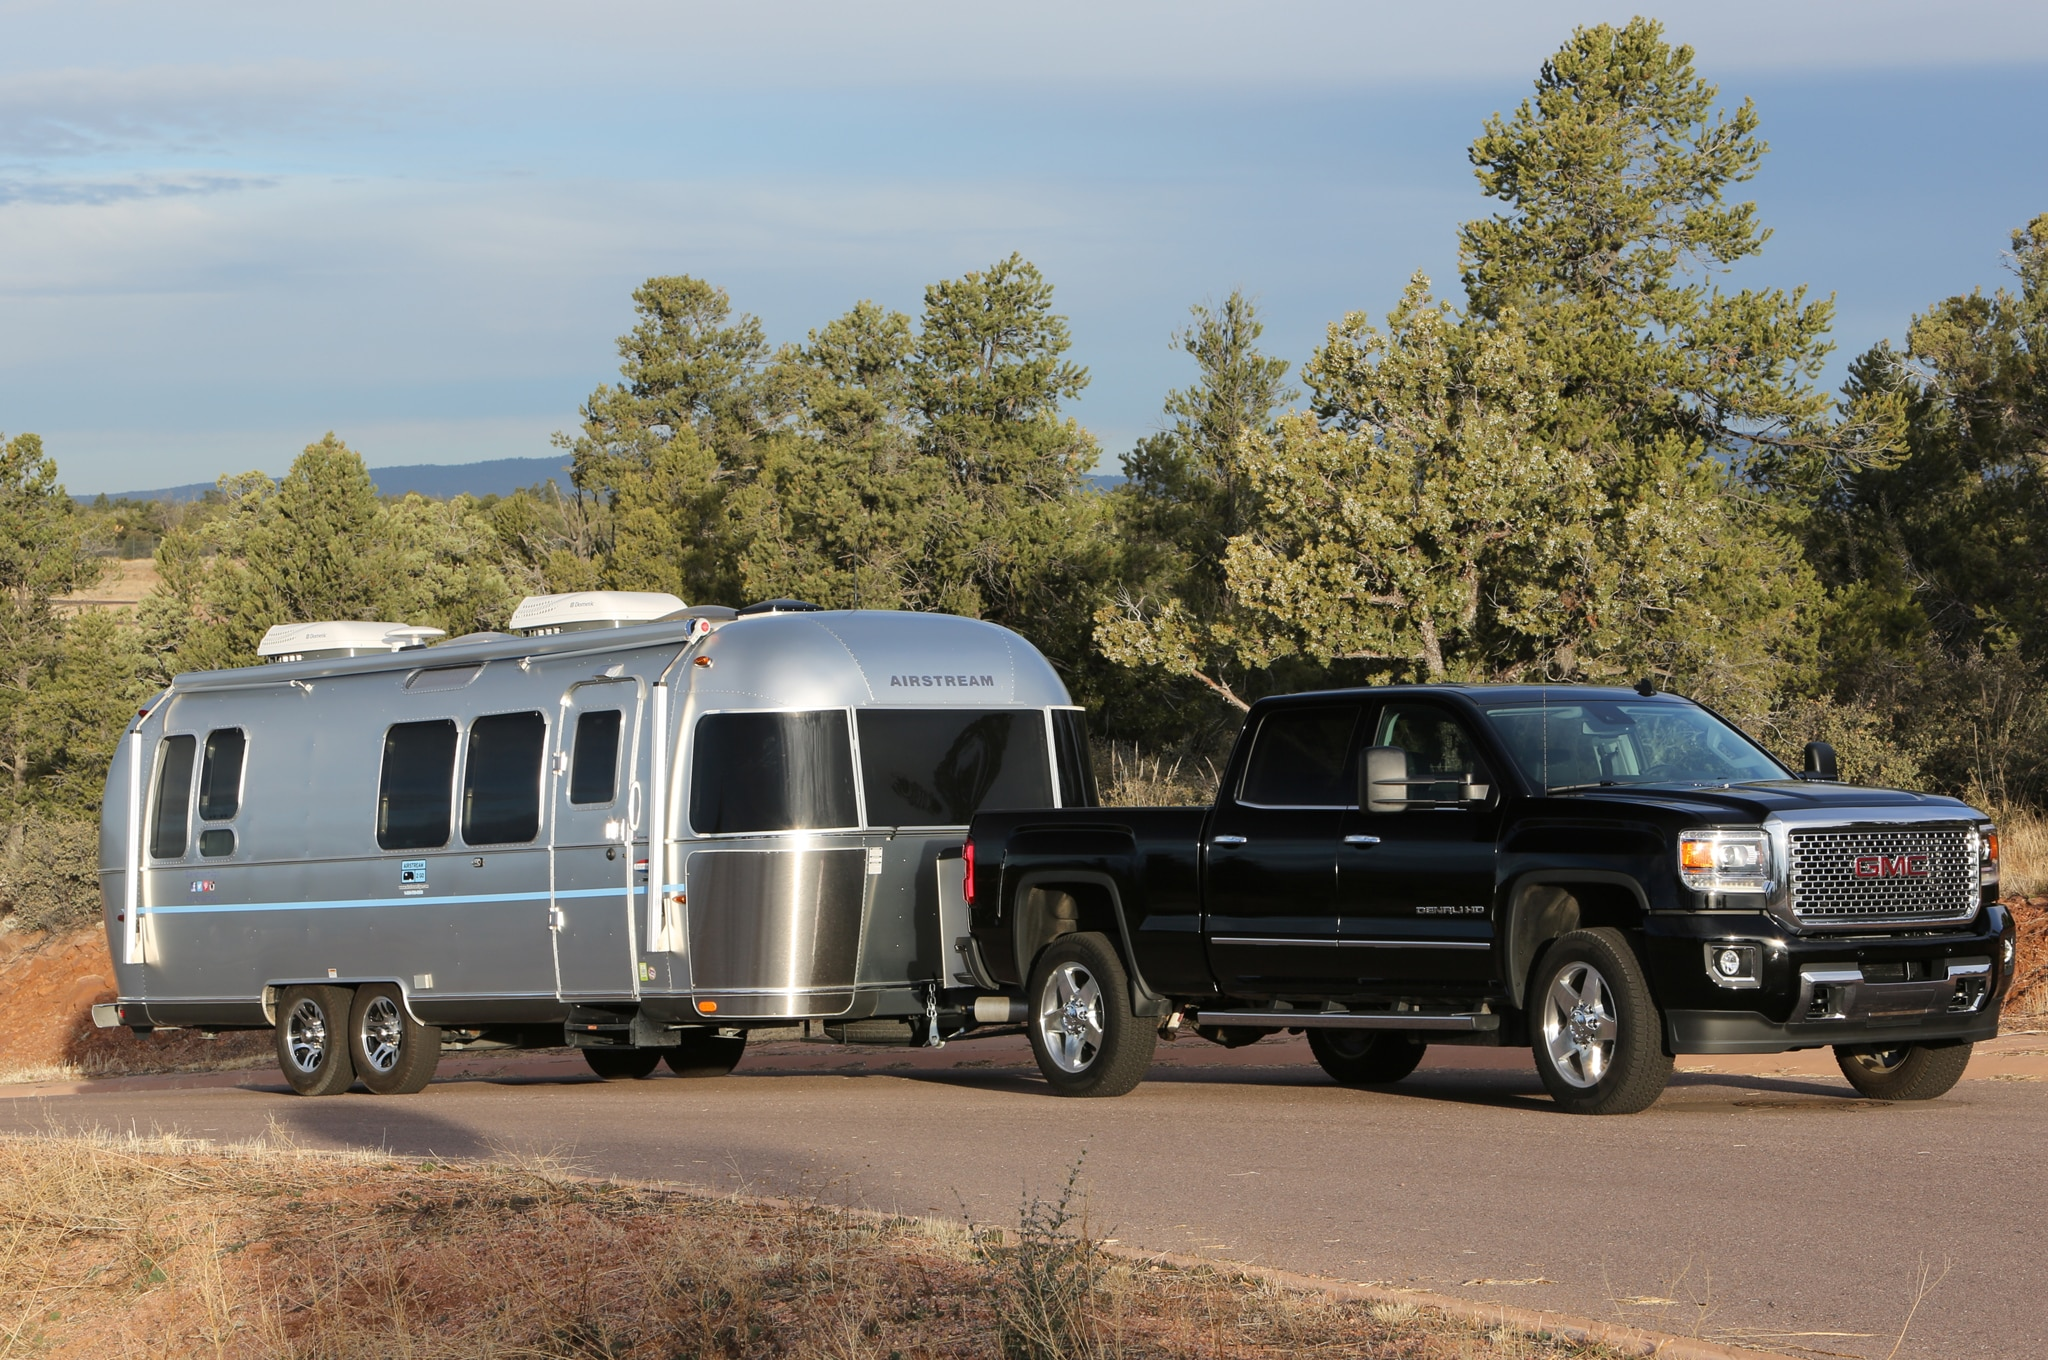 2015 GMC Sierra 2500HD Denali with camper